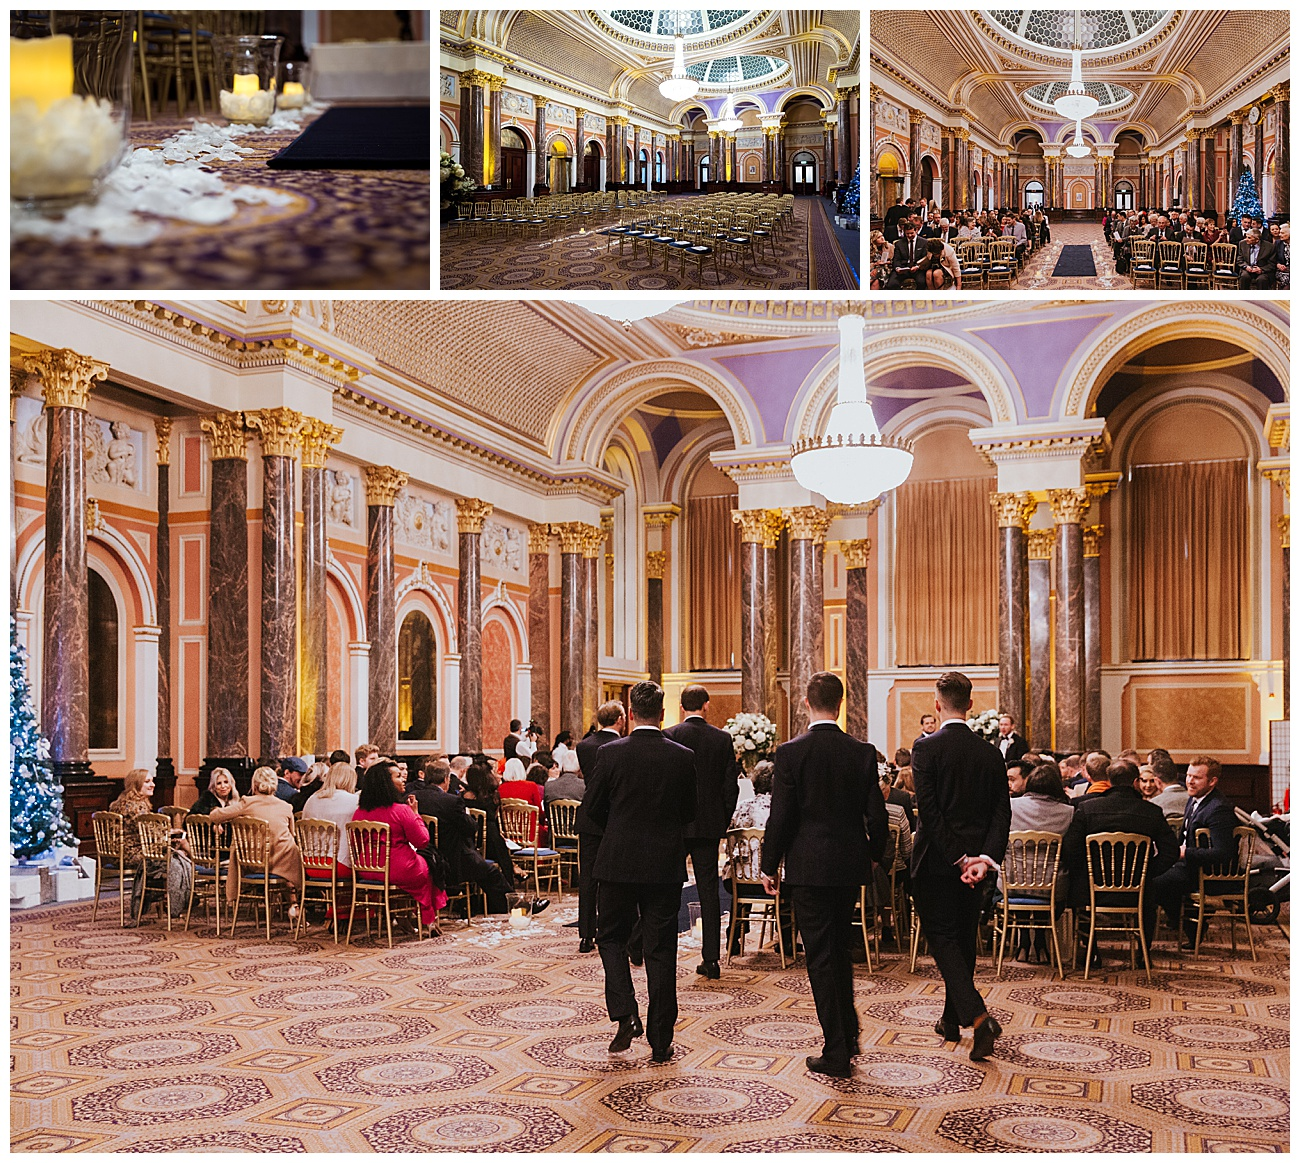 Pictures of the ceremony room setup and the guests arriving